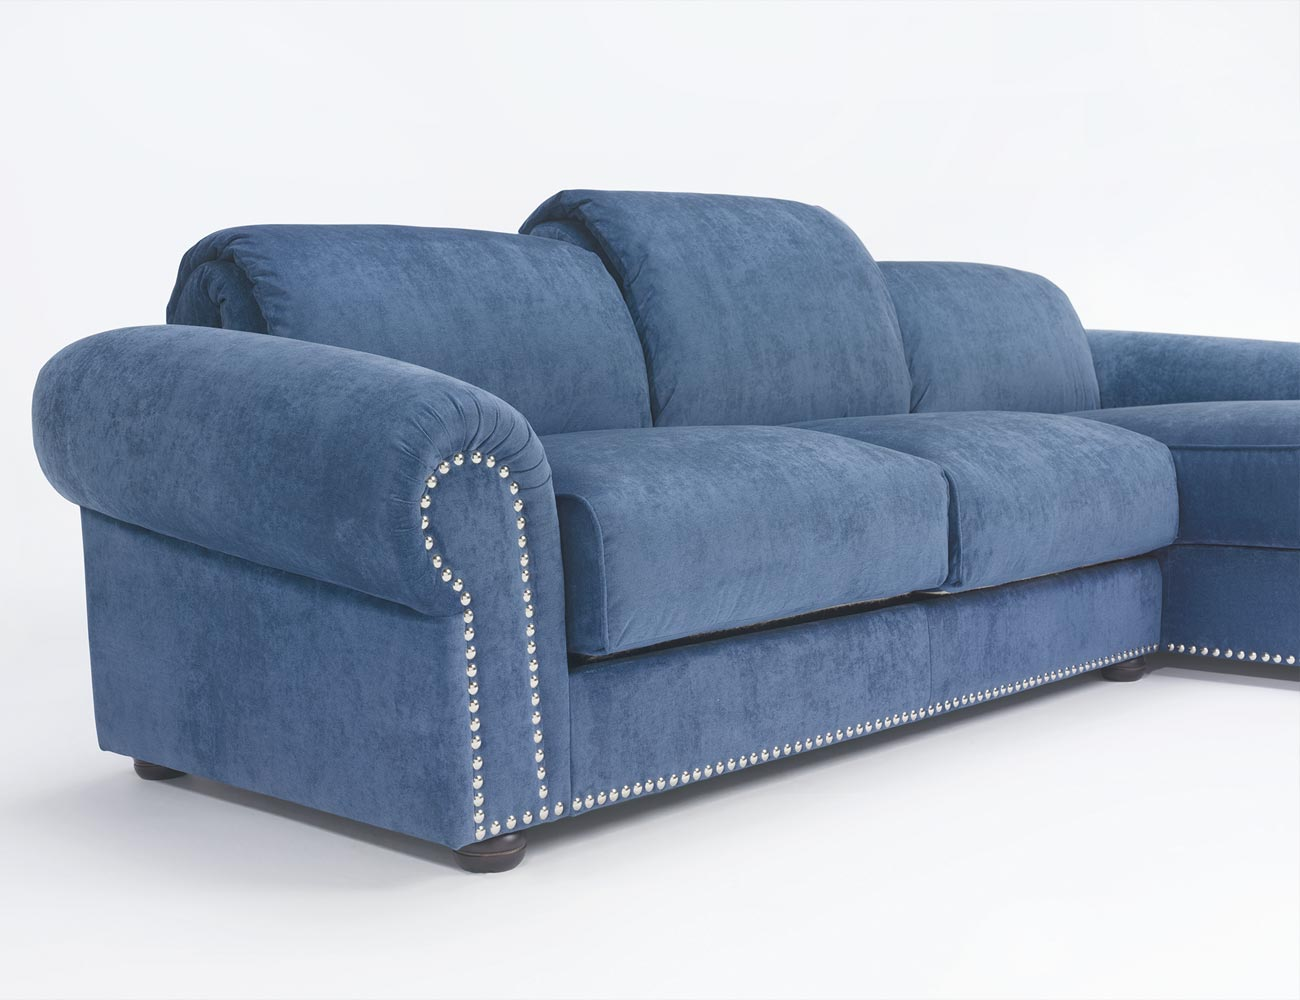 Sofa chaiselongue gran lujo decorativo azul 132